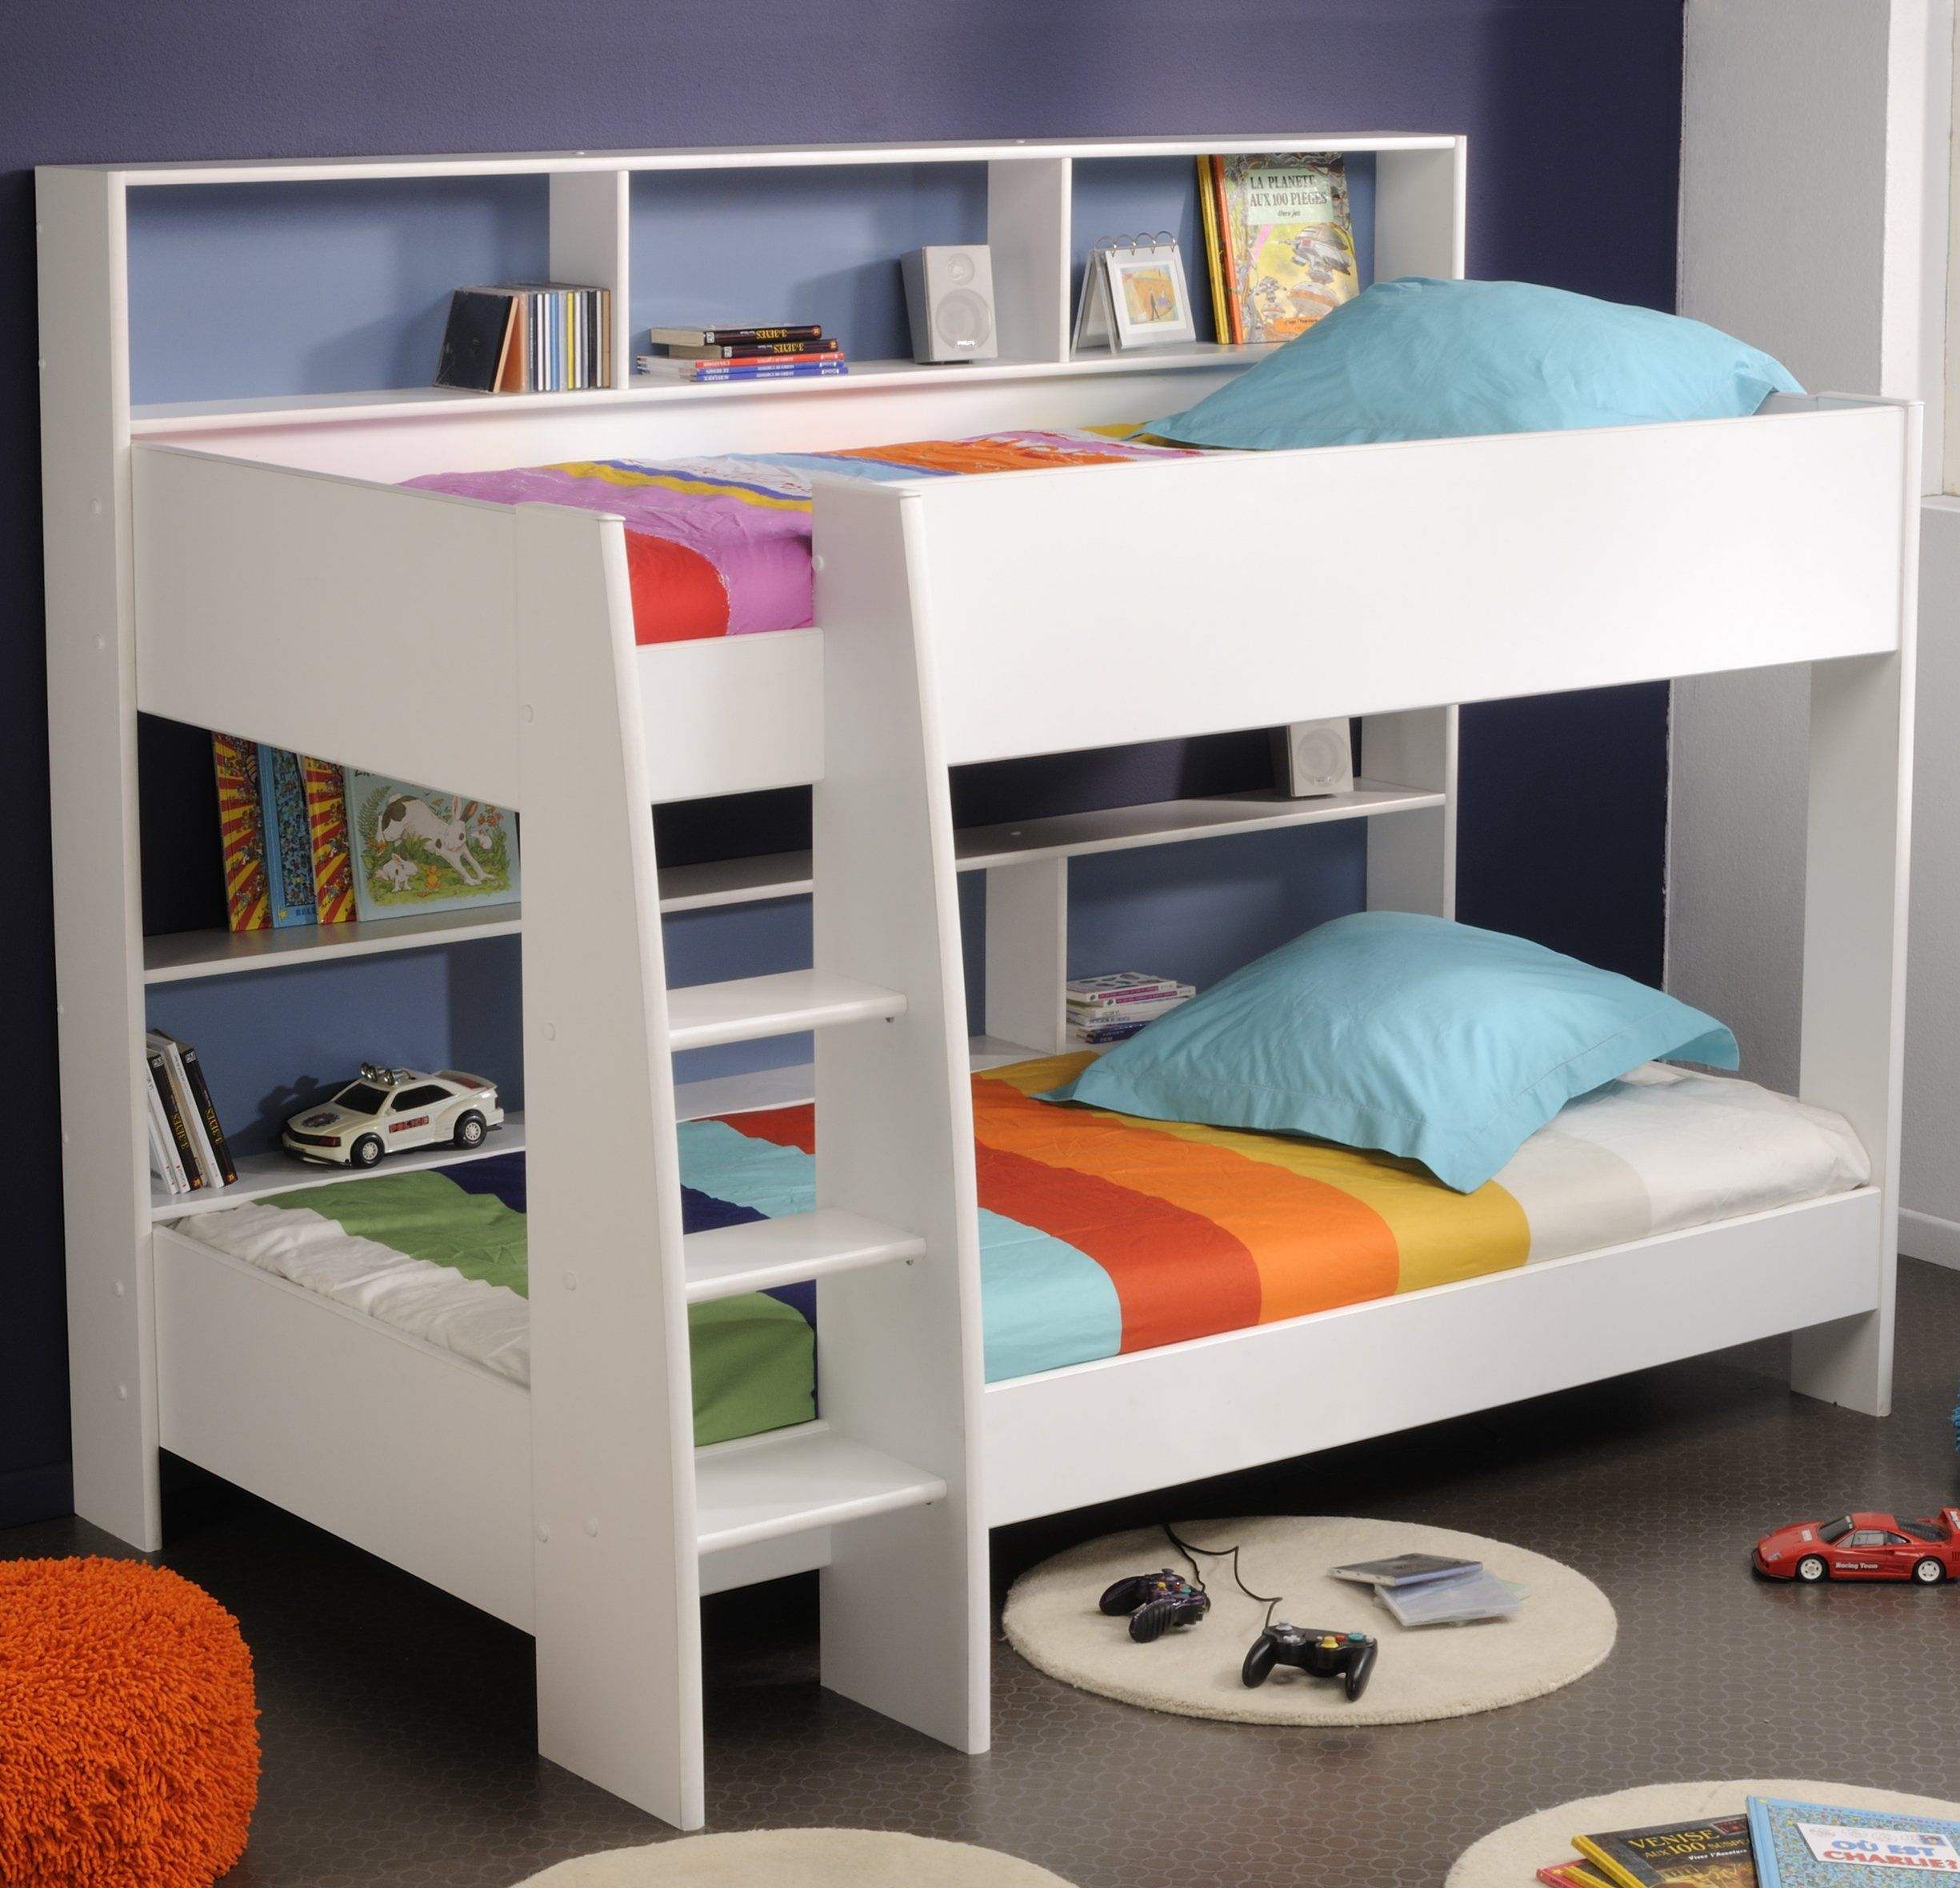 twin kids bunk bed with stairs  bedroom  pinterest  bunk bed  - twin kids bunk bed with stairs